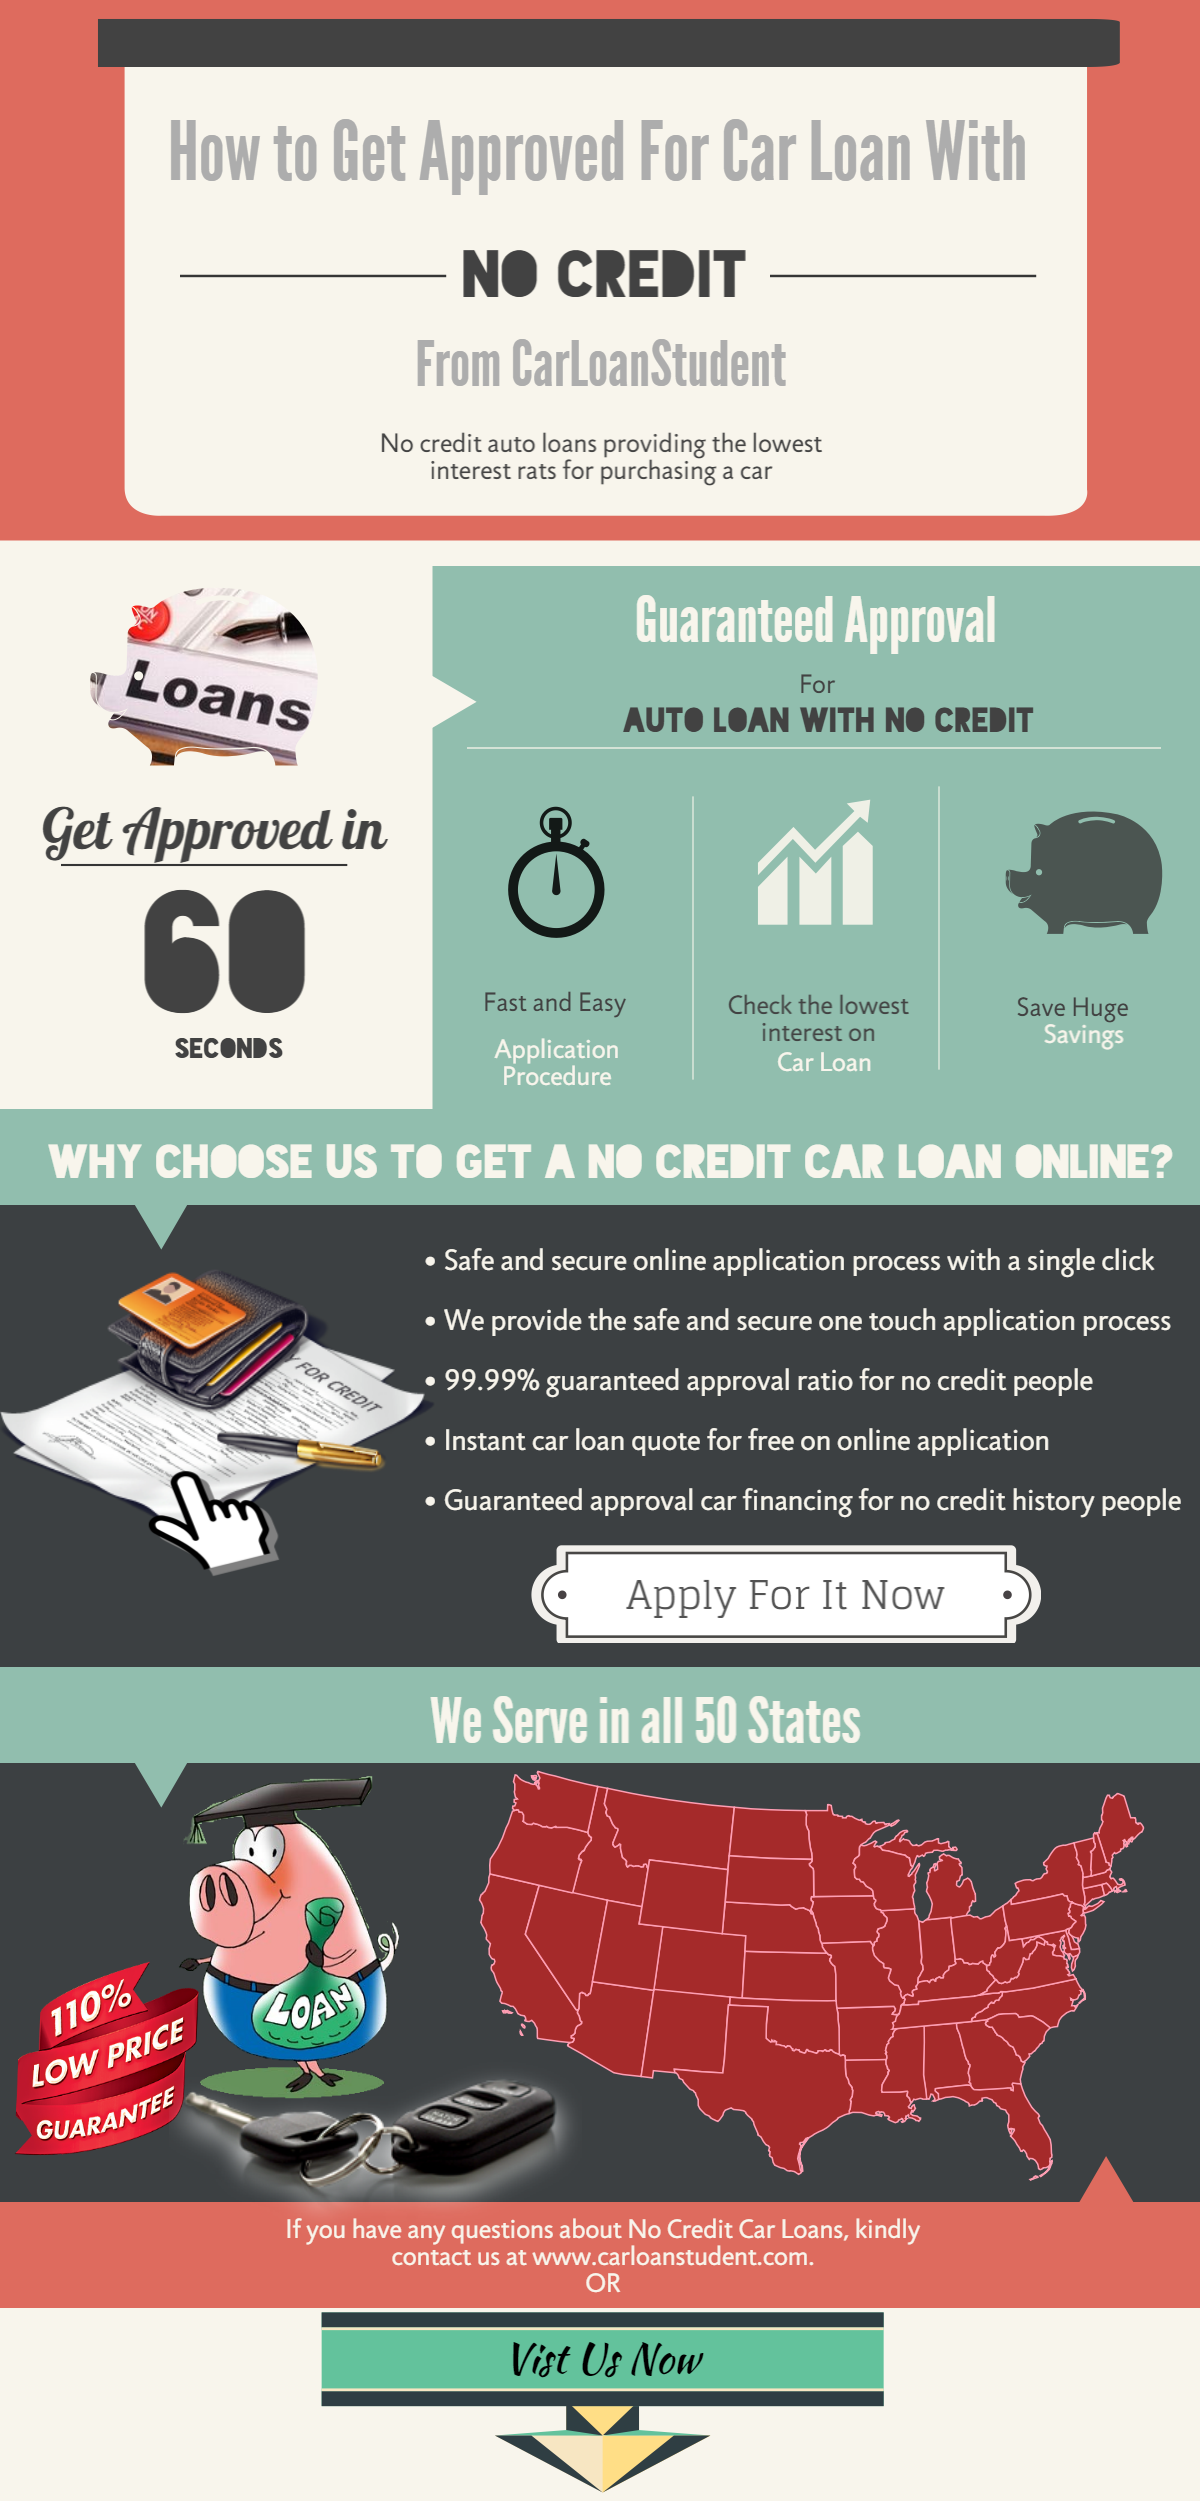 Loan With Your Car As Security